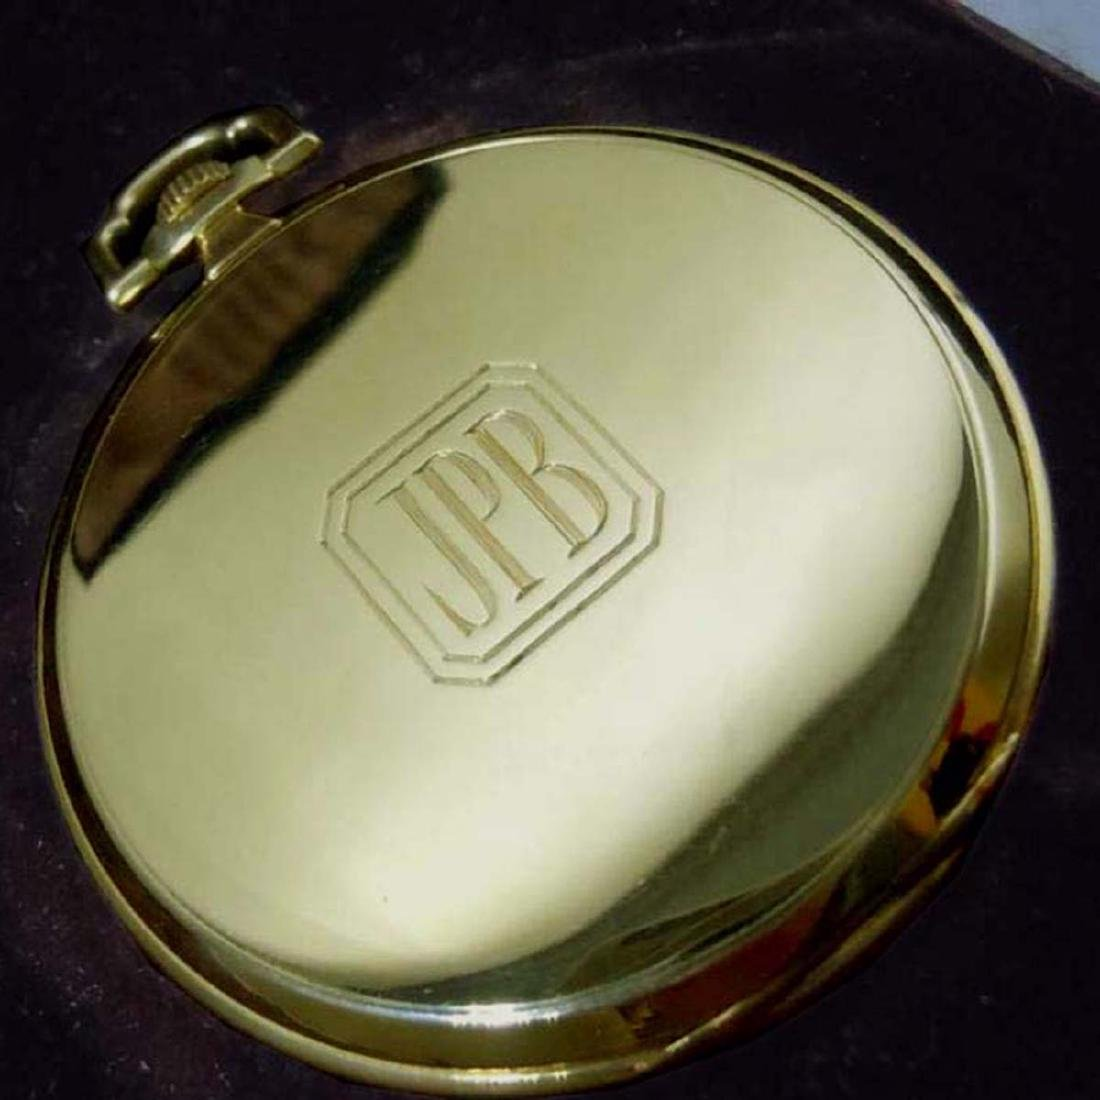 ART DECO 14KT GOLD IWC FOR TIFFANY & Co. POCKET WATCH ; - 6